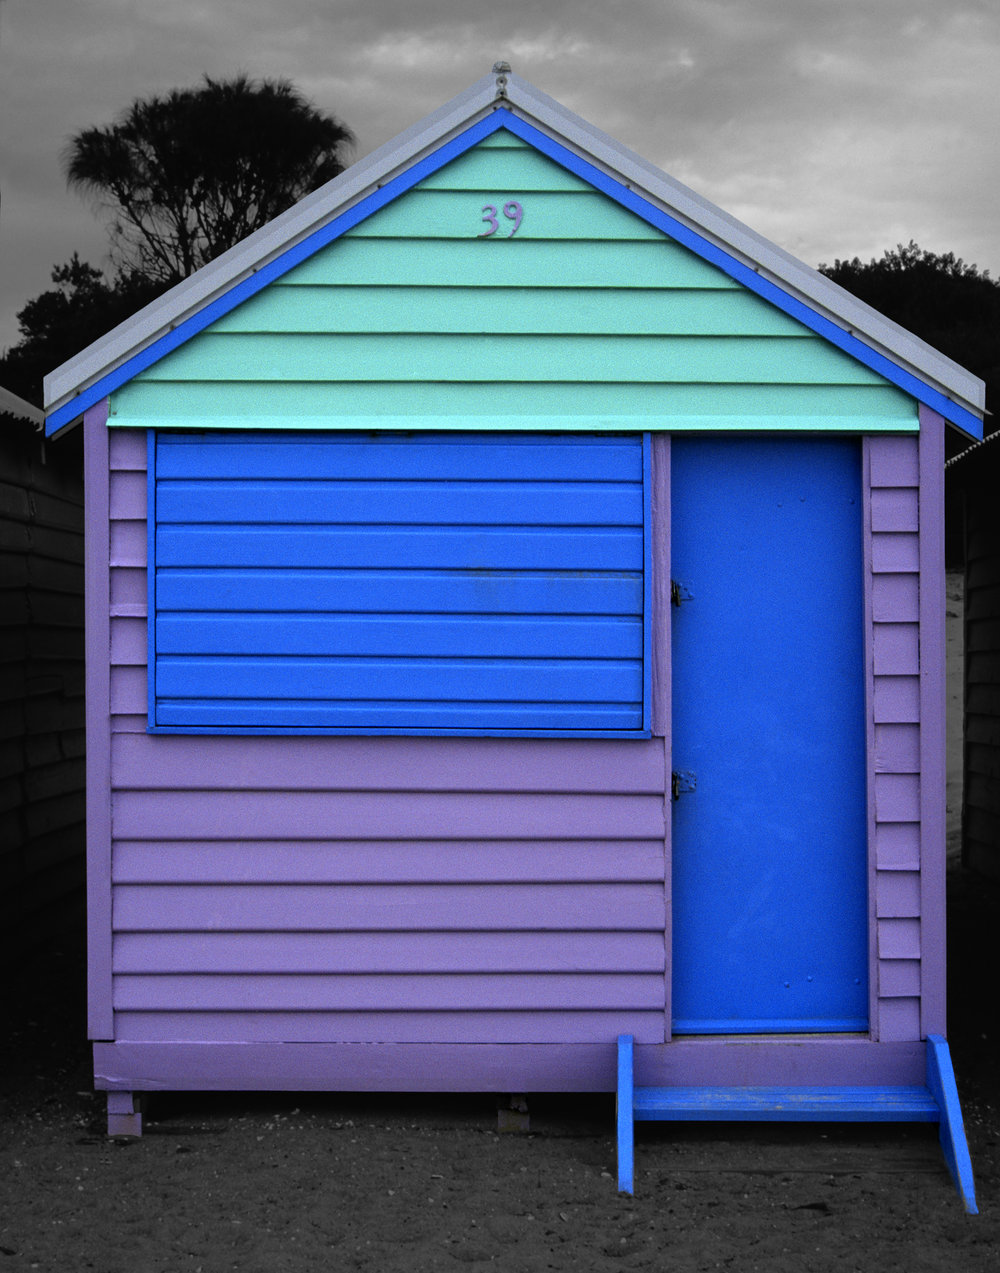 Judy Gelles,  Beach Box No. 39 , 2003  Digital pigment print, 8 x 10 in, edition of 20; 11 x 14 in, edition of 25; 16 x 20 in, edition of 25   Inquire